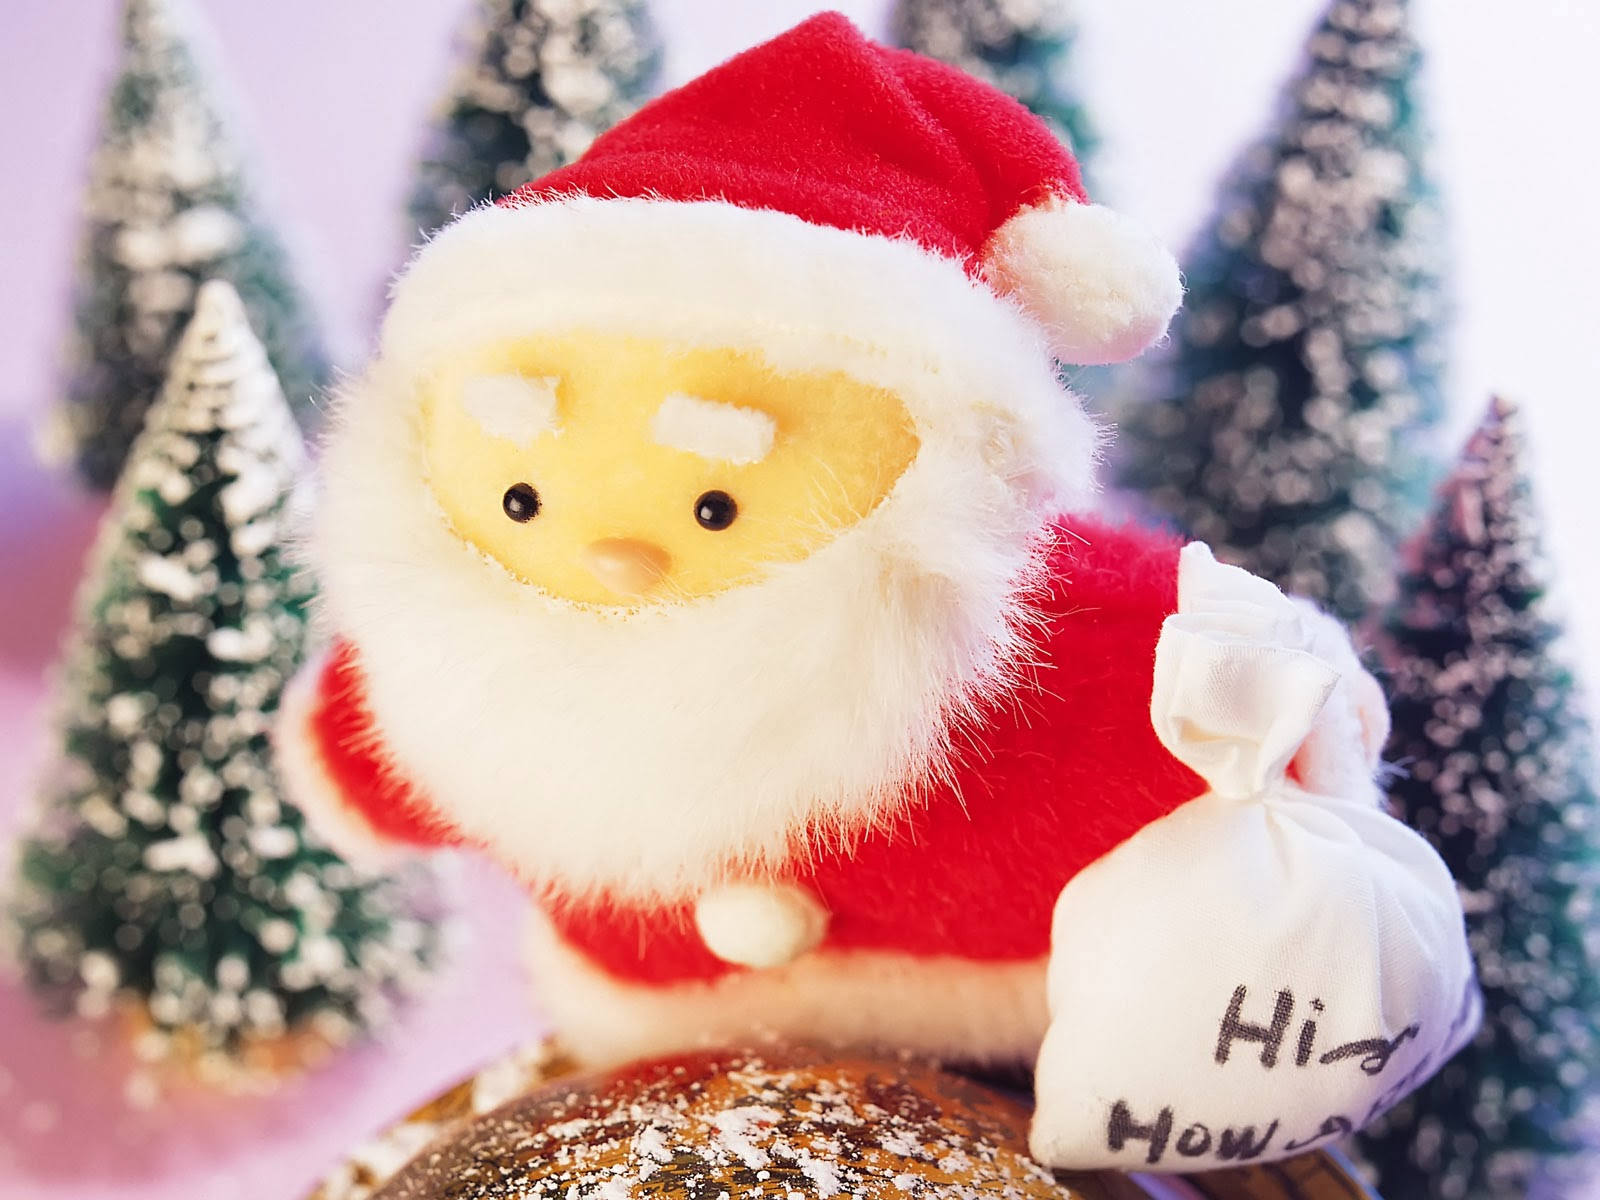 merry christmas 25th december 2013 hd wallpapers and pics happiness style